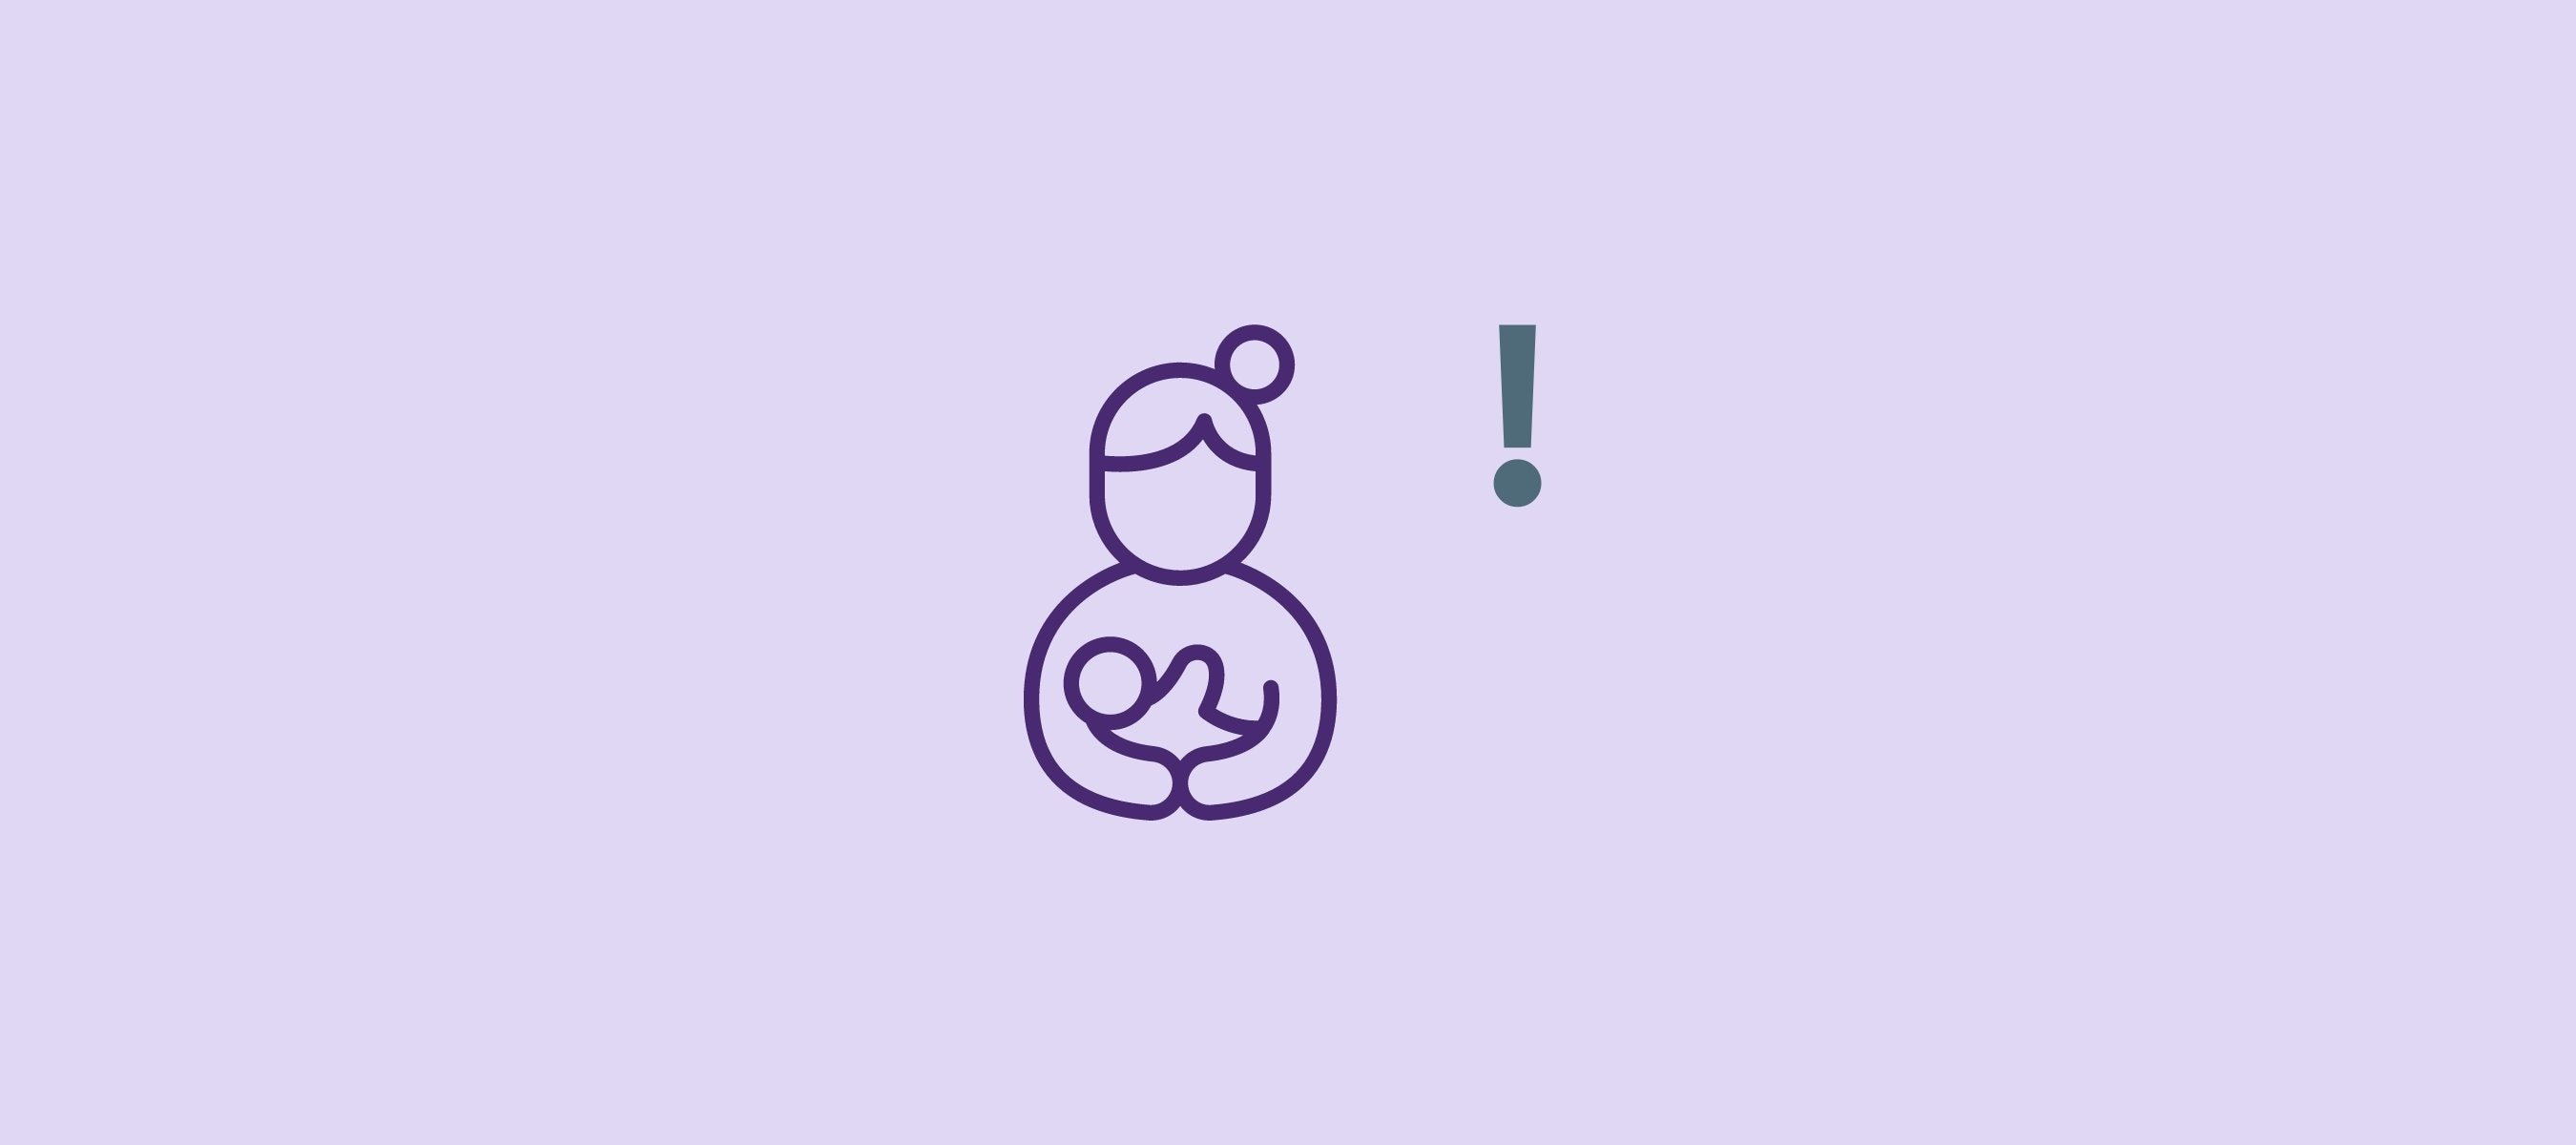 Exclamation mark about the disadvantages of breastfeeding to put your baby to sleep